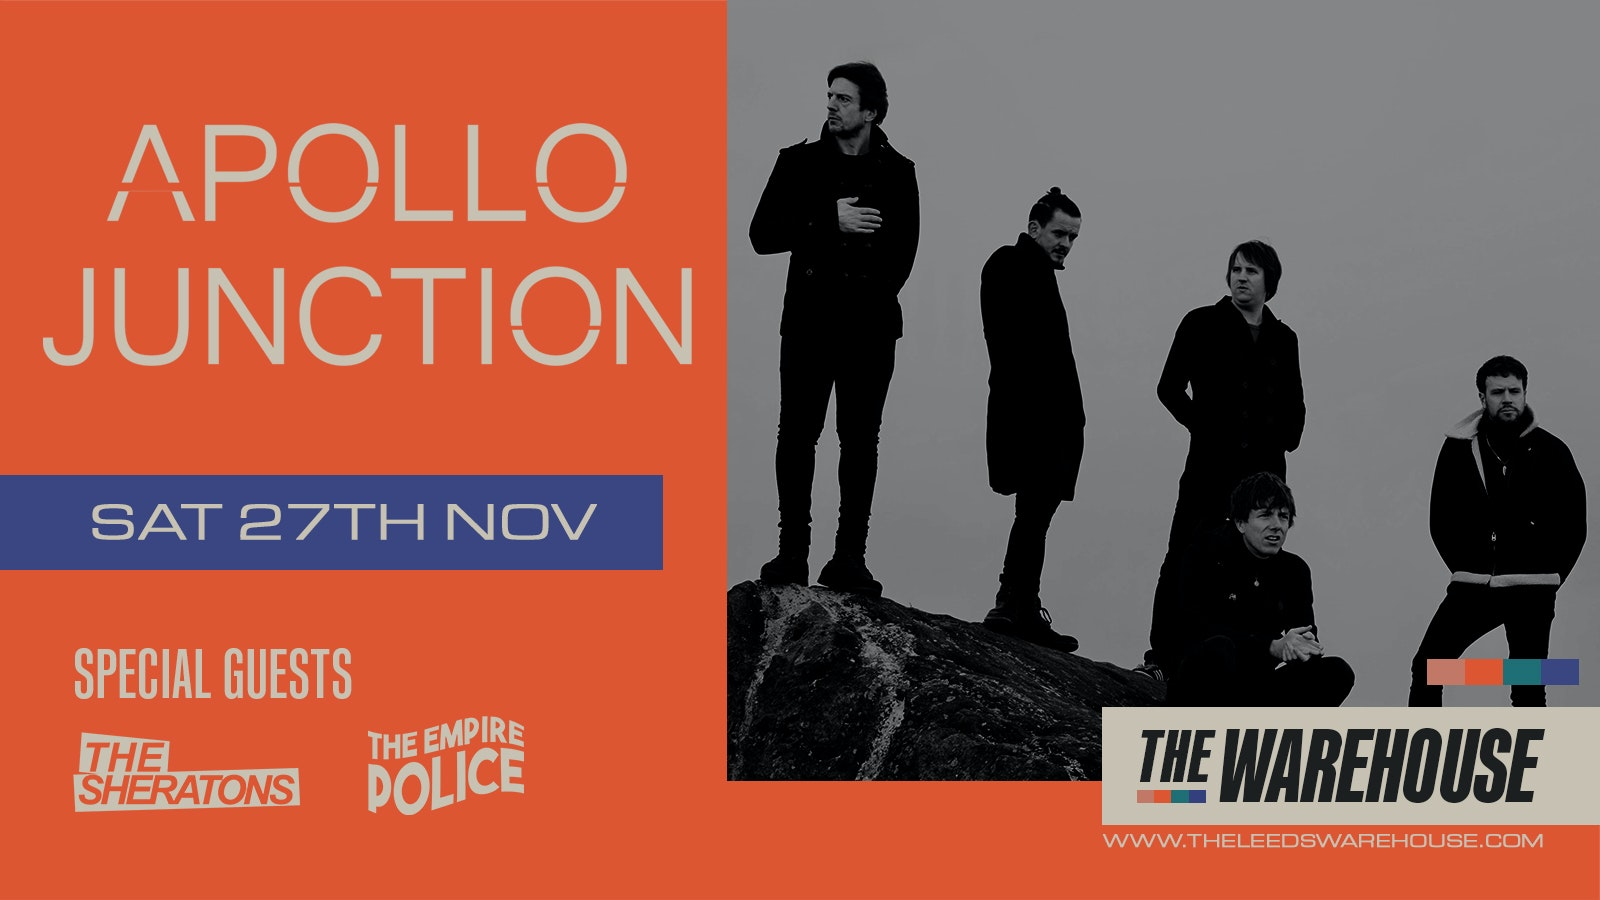 Apollo Junction + The Sheratons and The Empire Police – LIVE